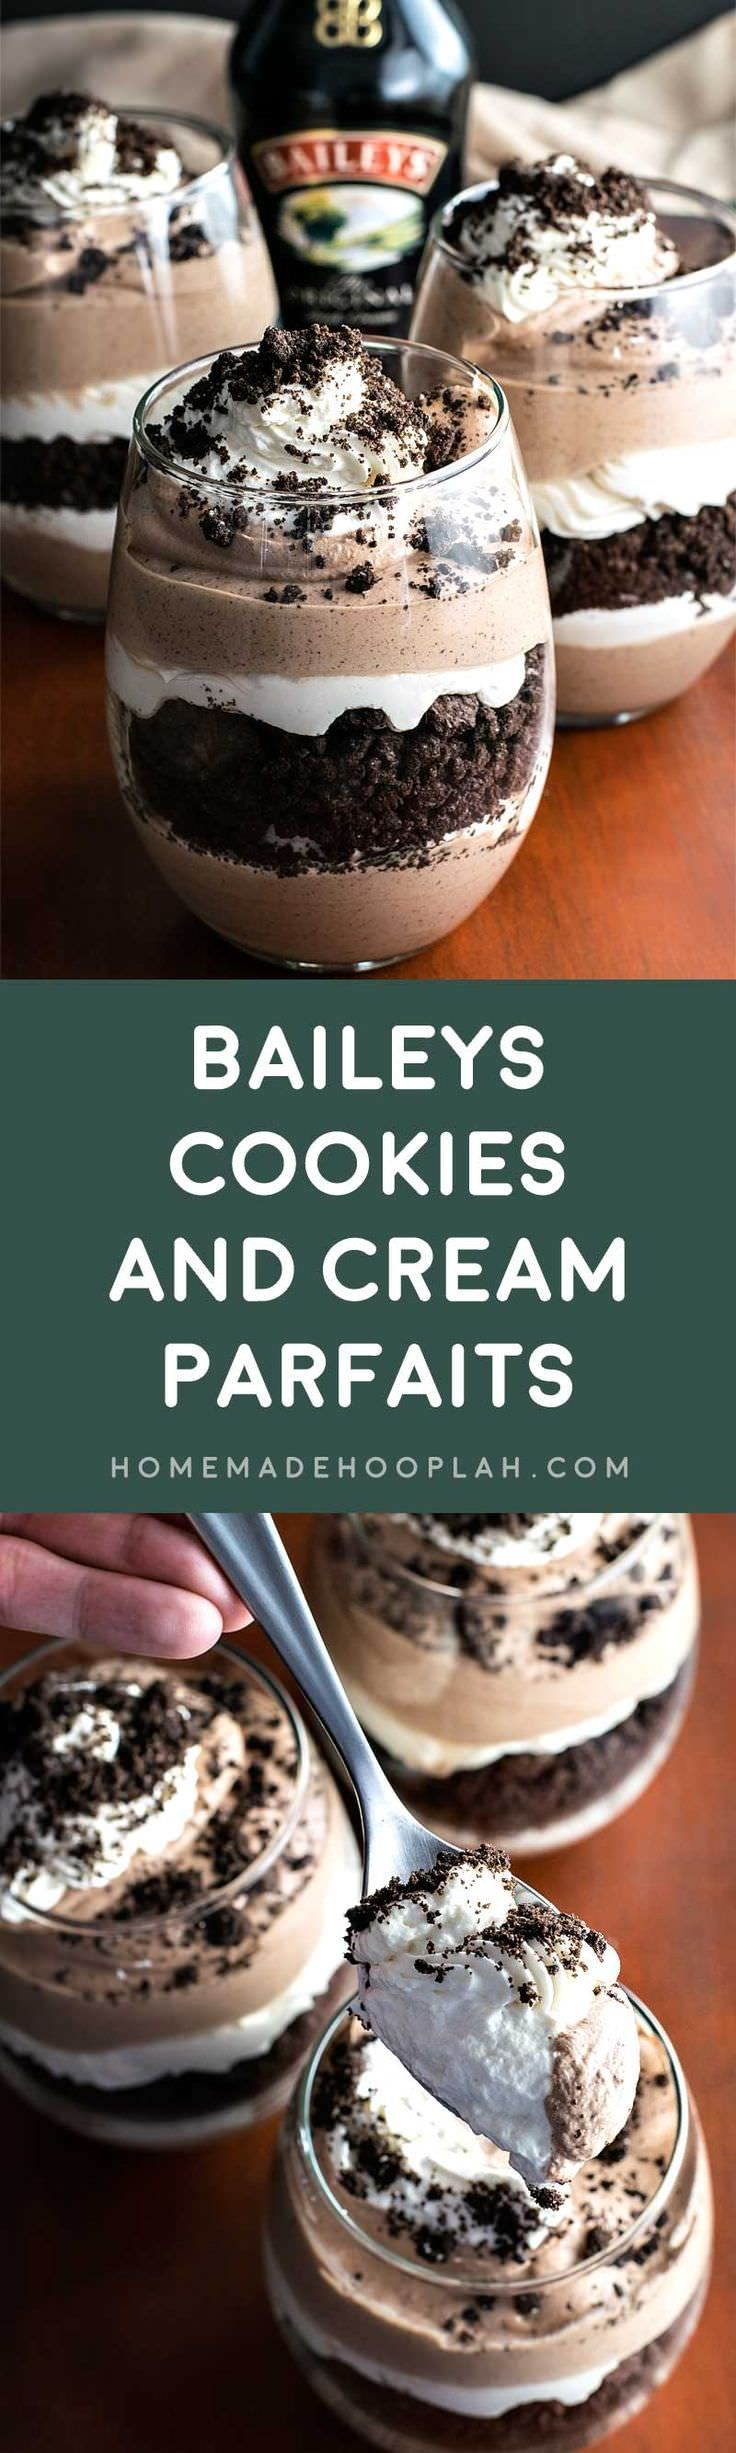 These parfaits are just gorgeous and you could not stop yourself from grabbing your spoon. Check out the recipe